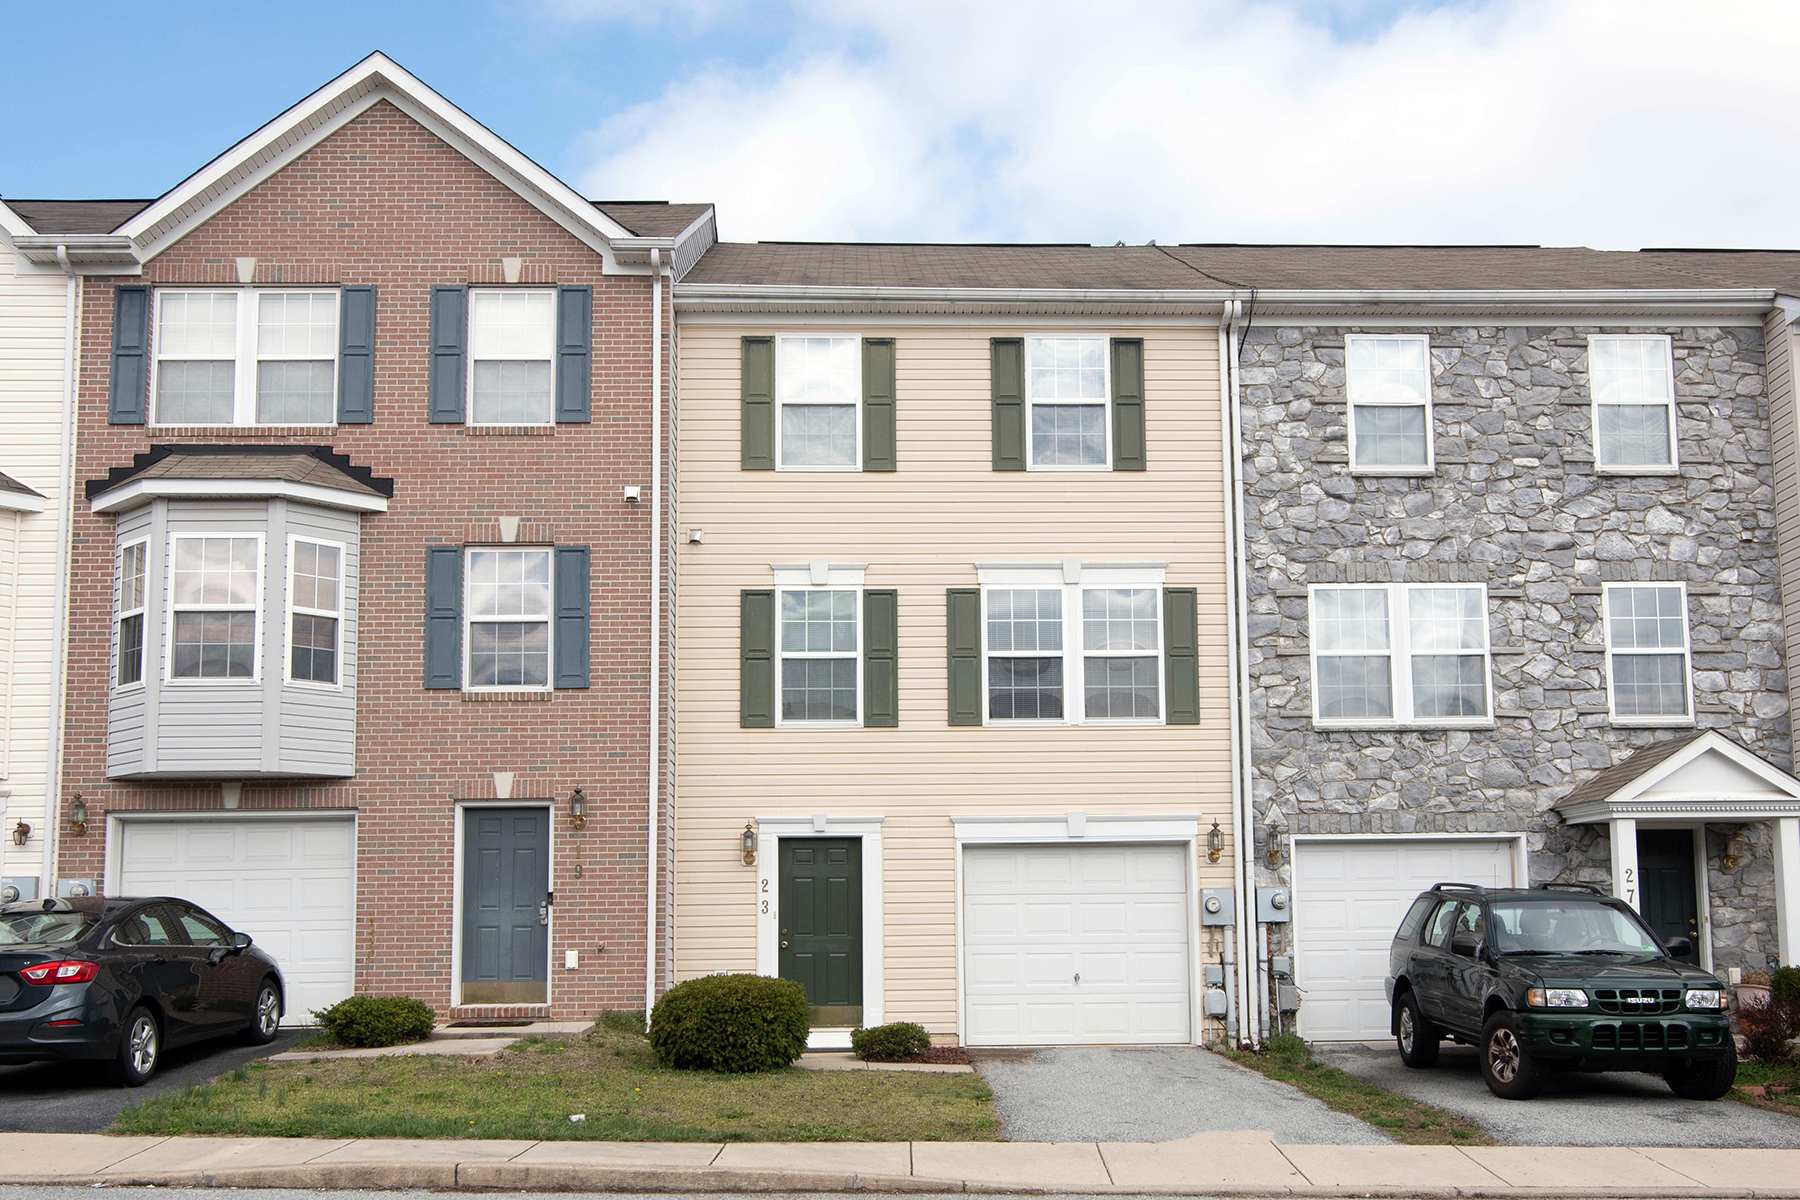 Townhouse/Row House for sale in 23 Dunlap Dr., Charles Town, WV ,25414